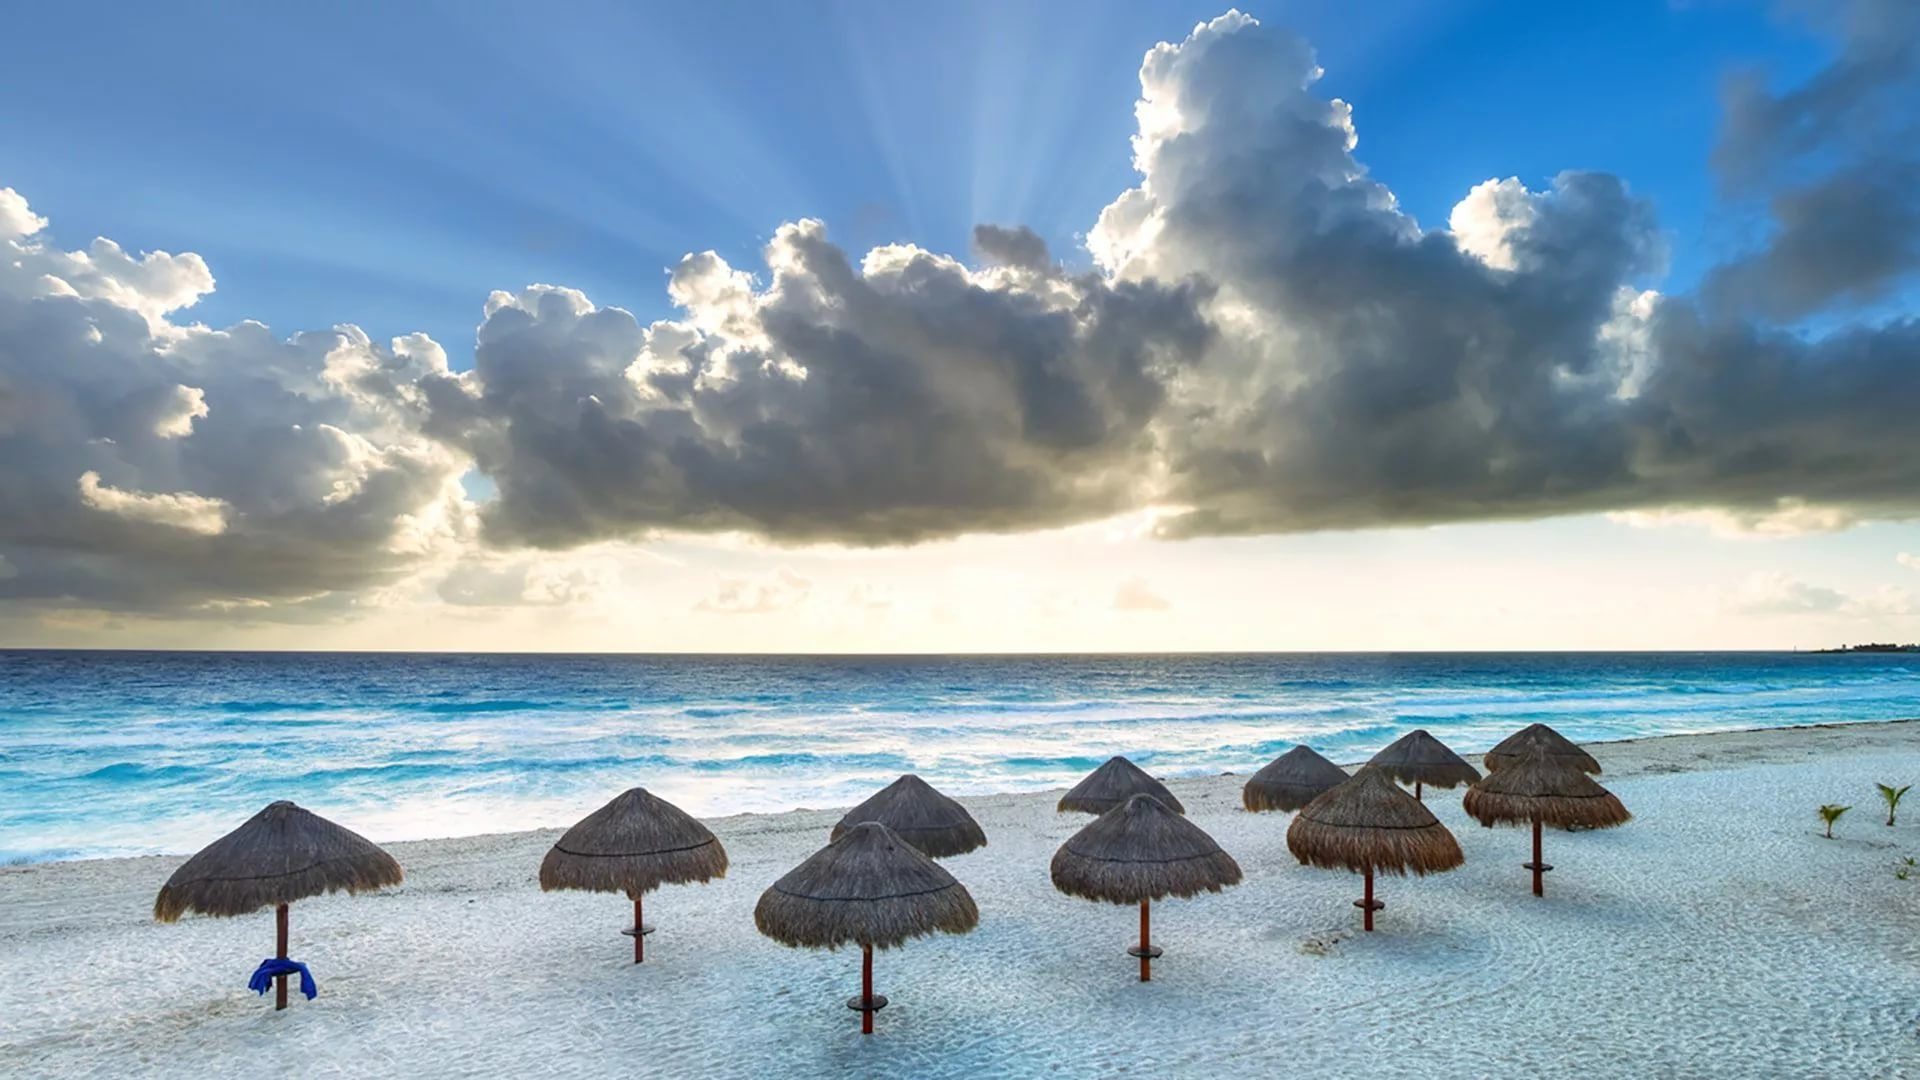 Cancun Mexico wallpaper and themes